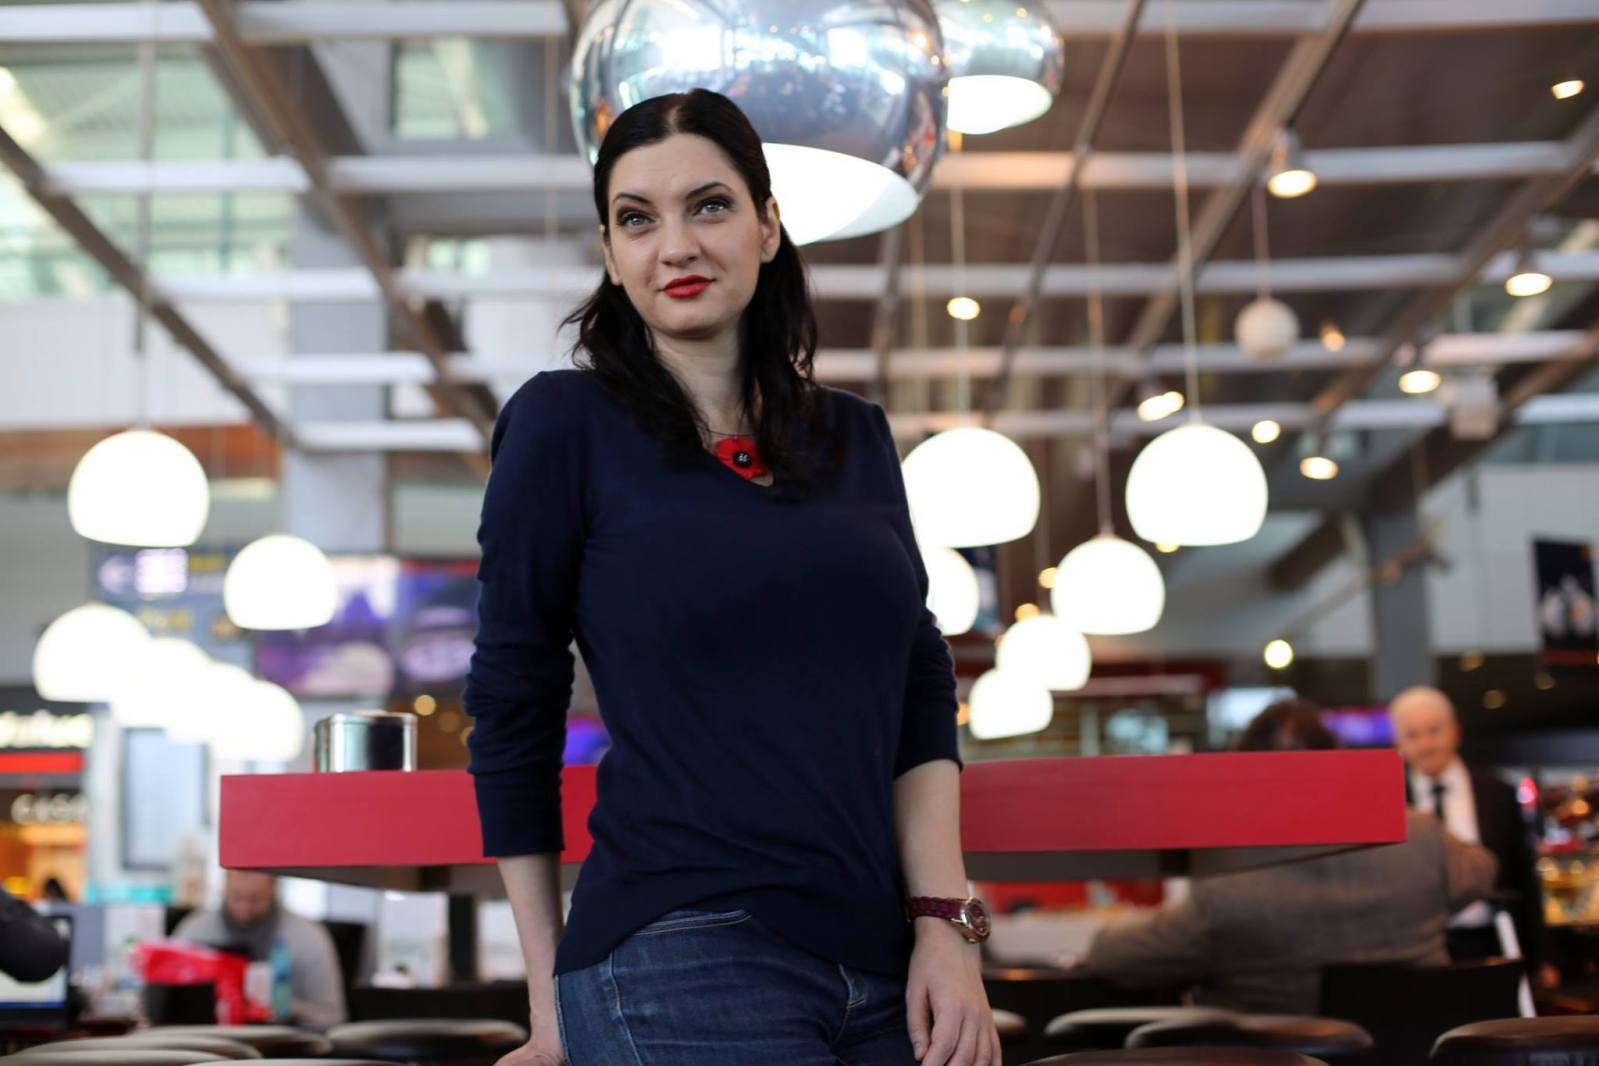 Woman wearing navy blue sweater and red necklace